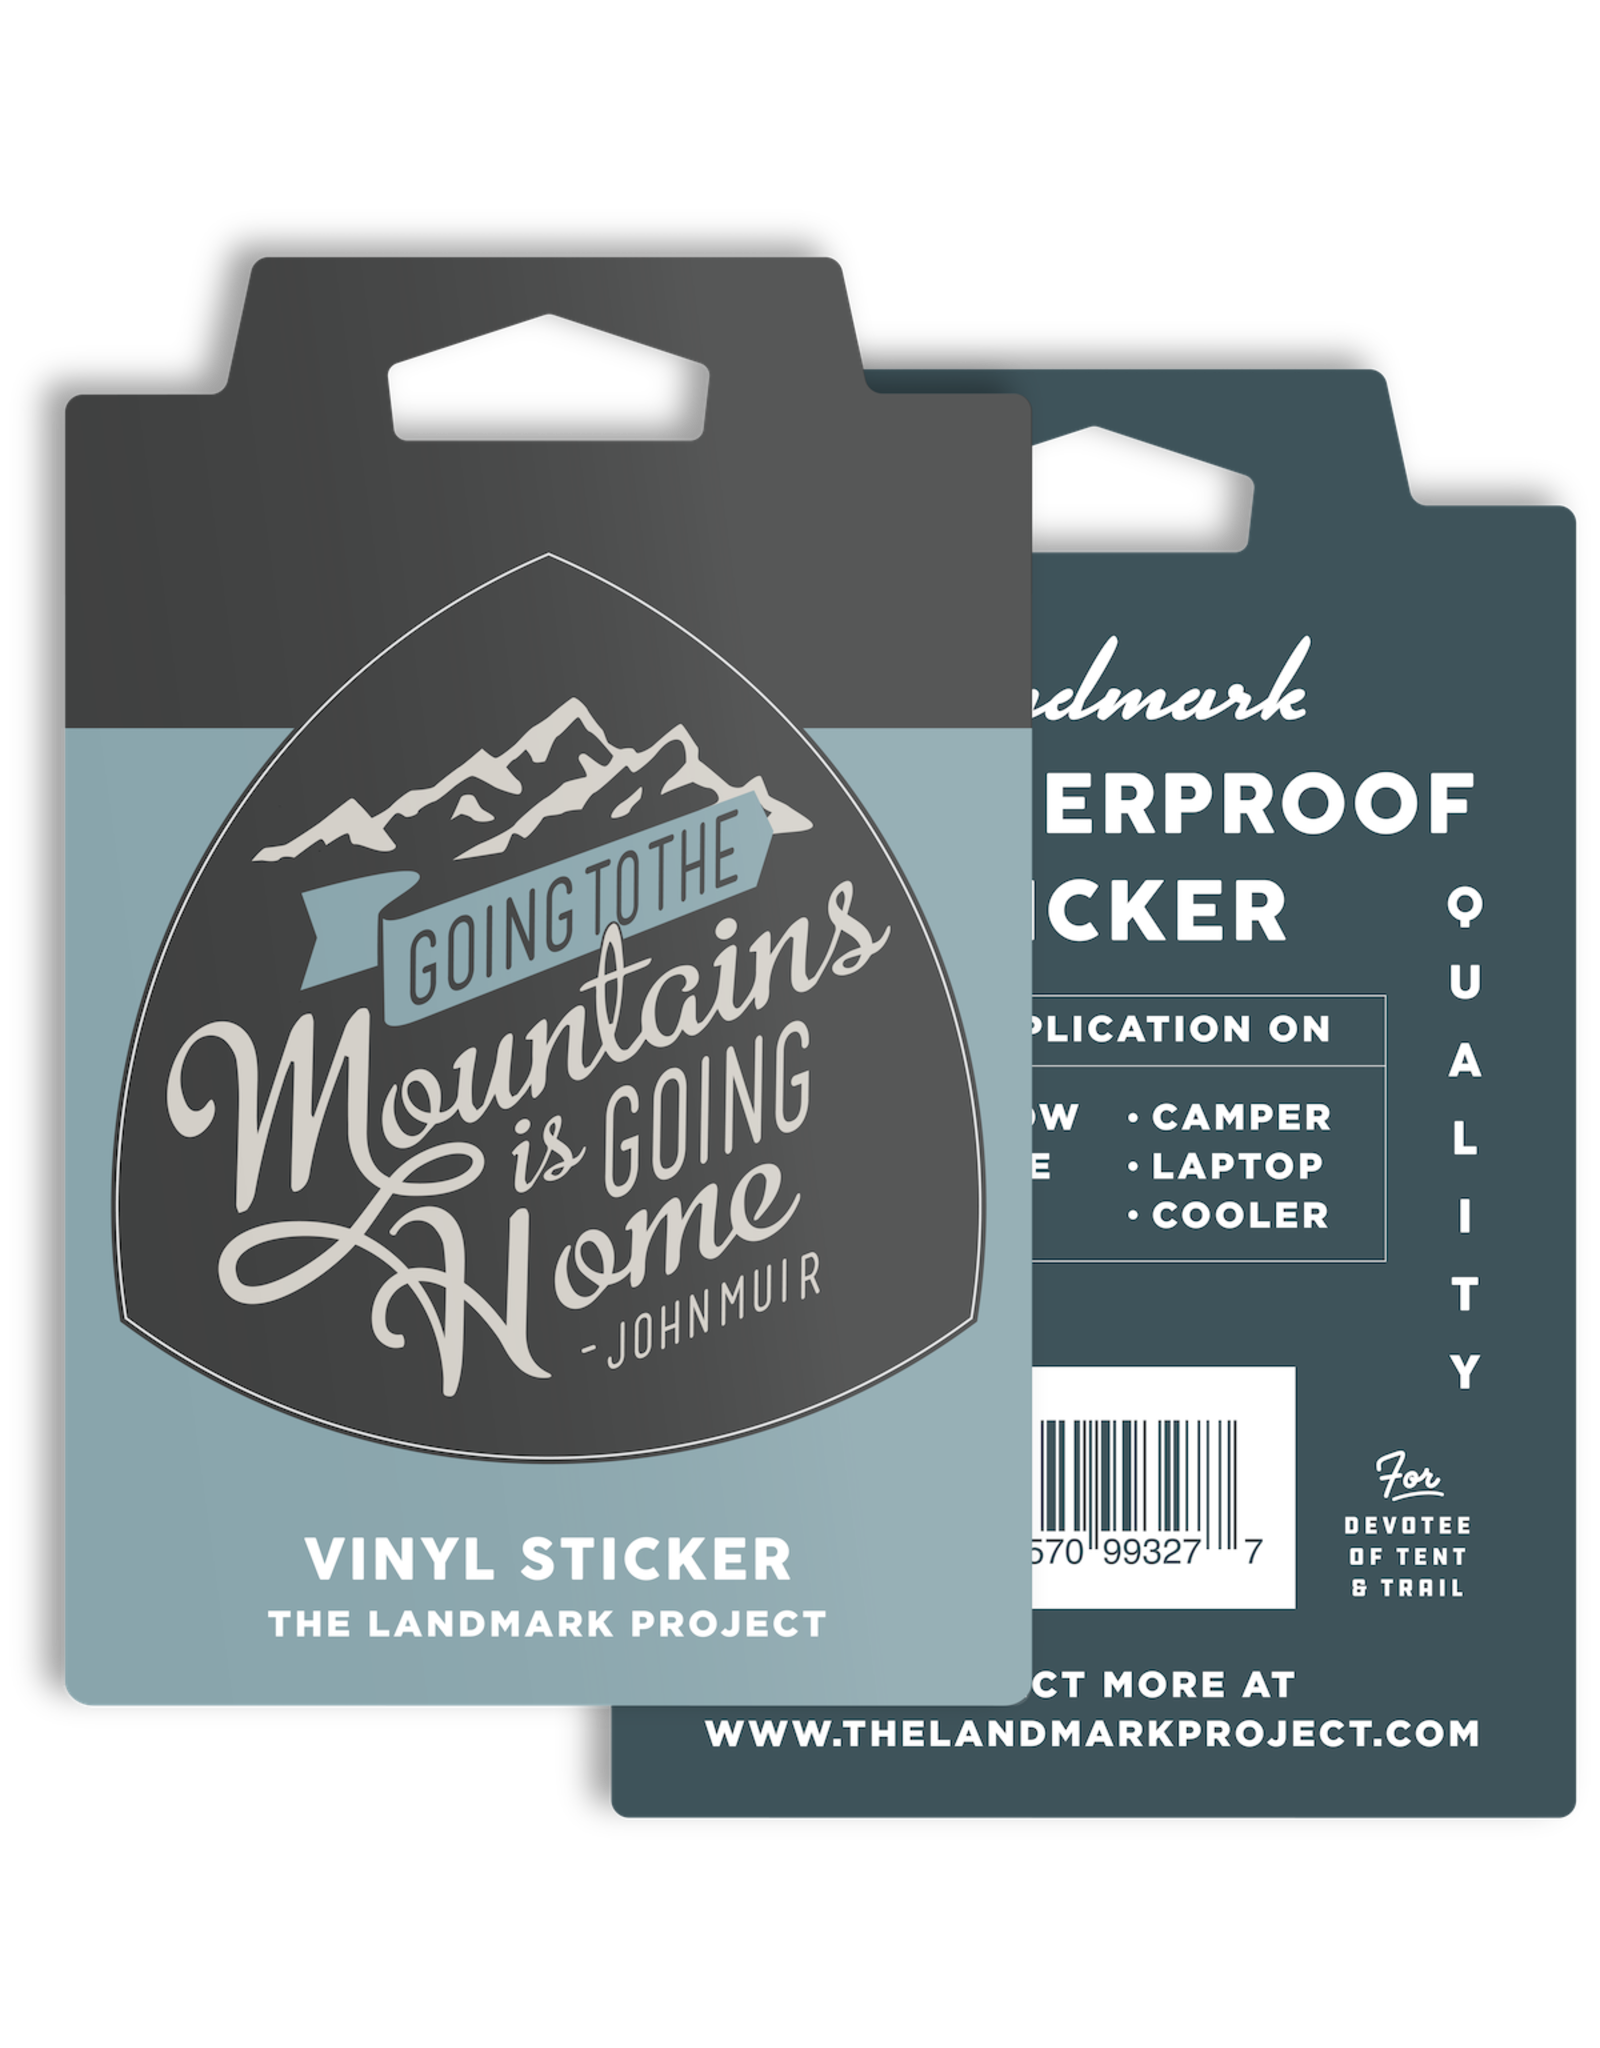 Going To The Mountains - Sticker